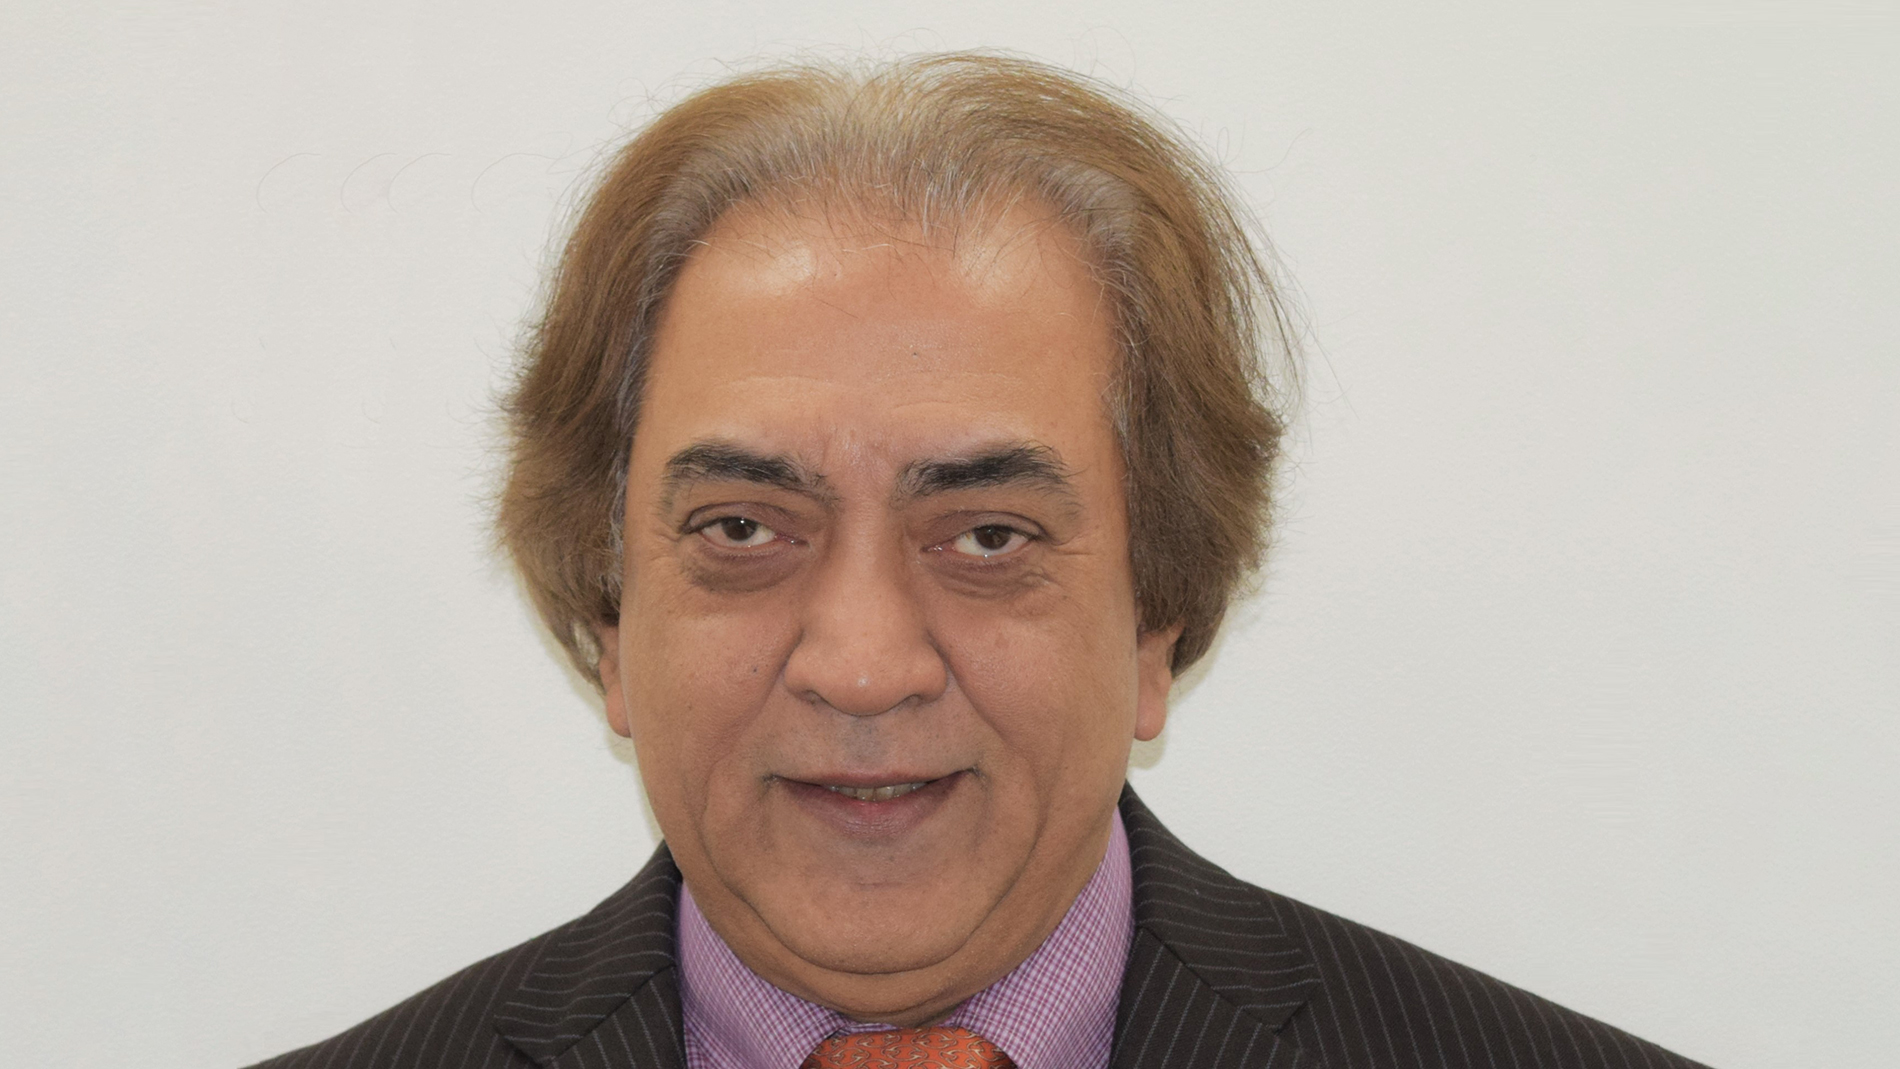 Dr. Gourab Majumdar, Mitsubishi Electric Corporation, Japan